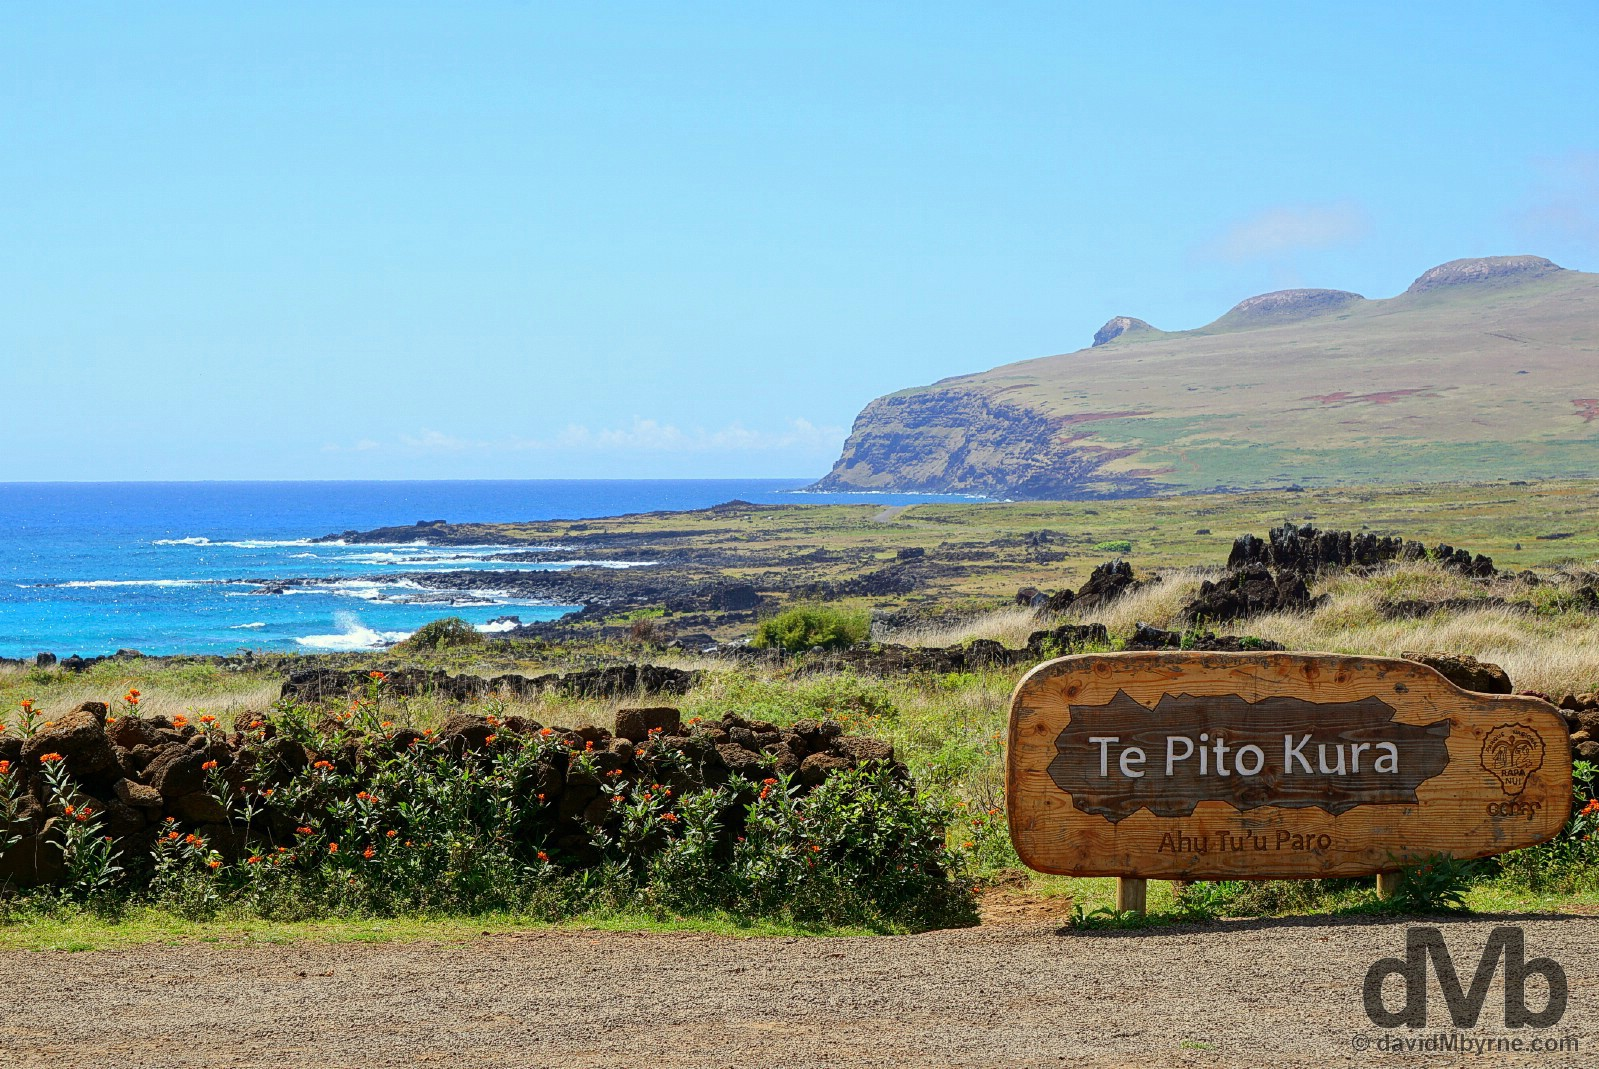 The entrance to Te Pito Kura, Easter Island, Chile. October 1, 2016.